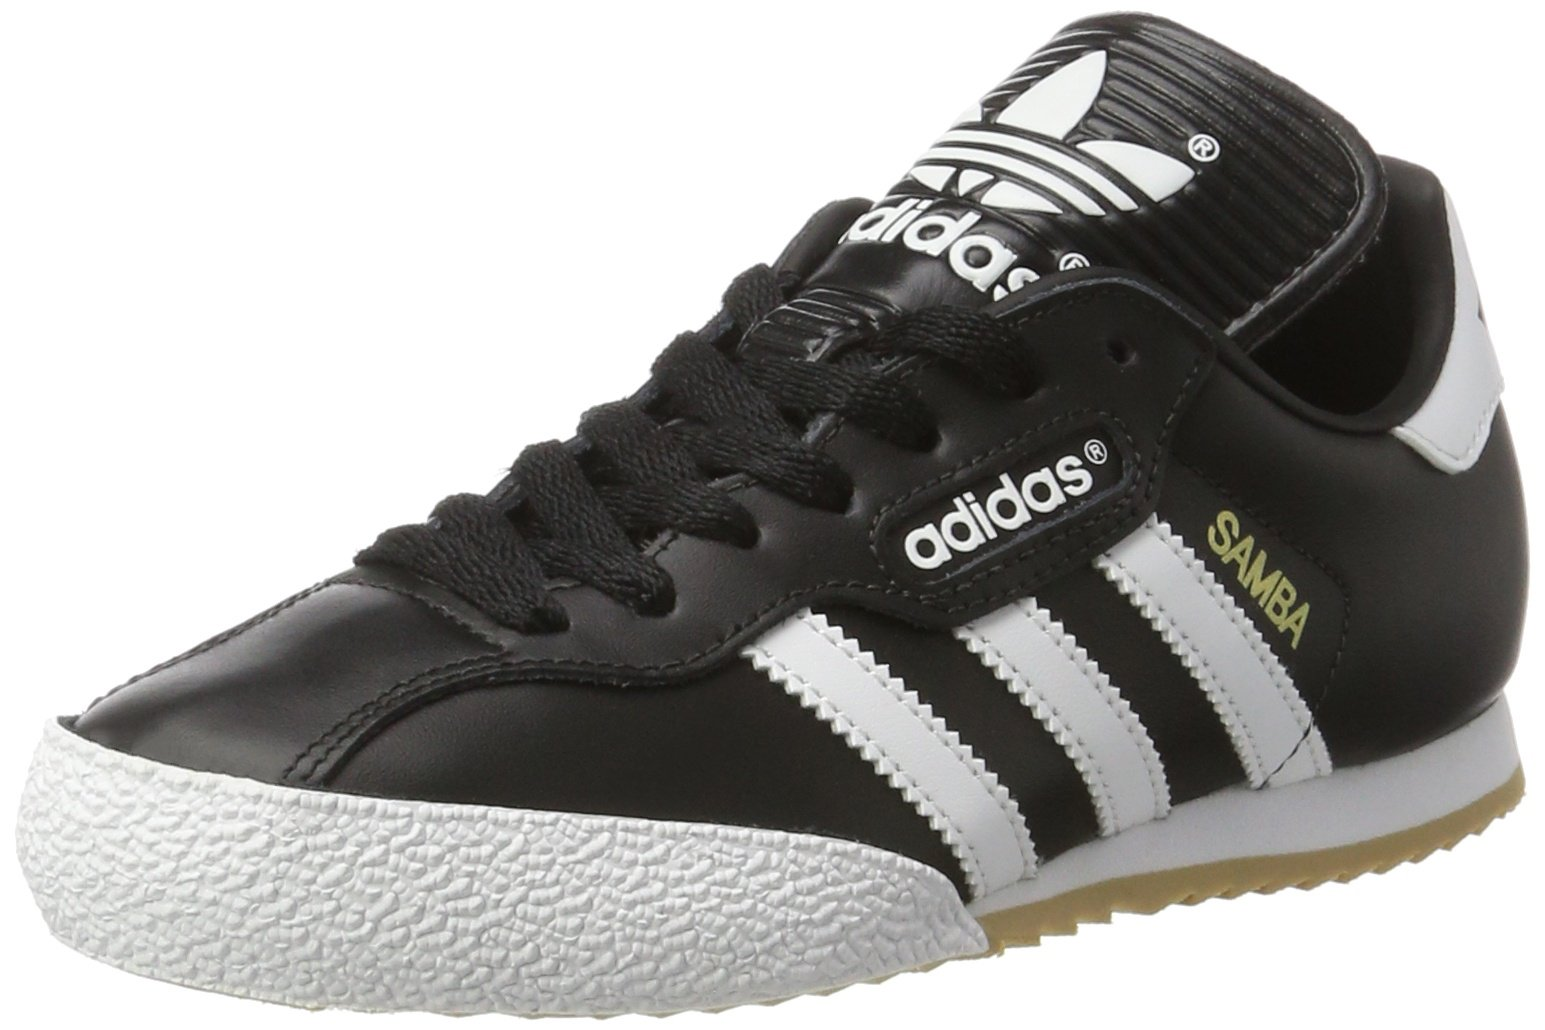 9df3a6f9aaca50 ... Trainers   adidas Men s Samba Super Fitness Shoes. Sale! 🔍. On Sale